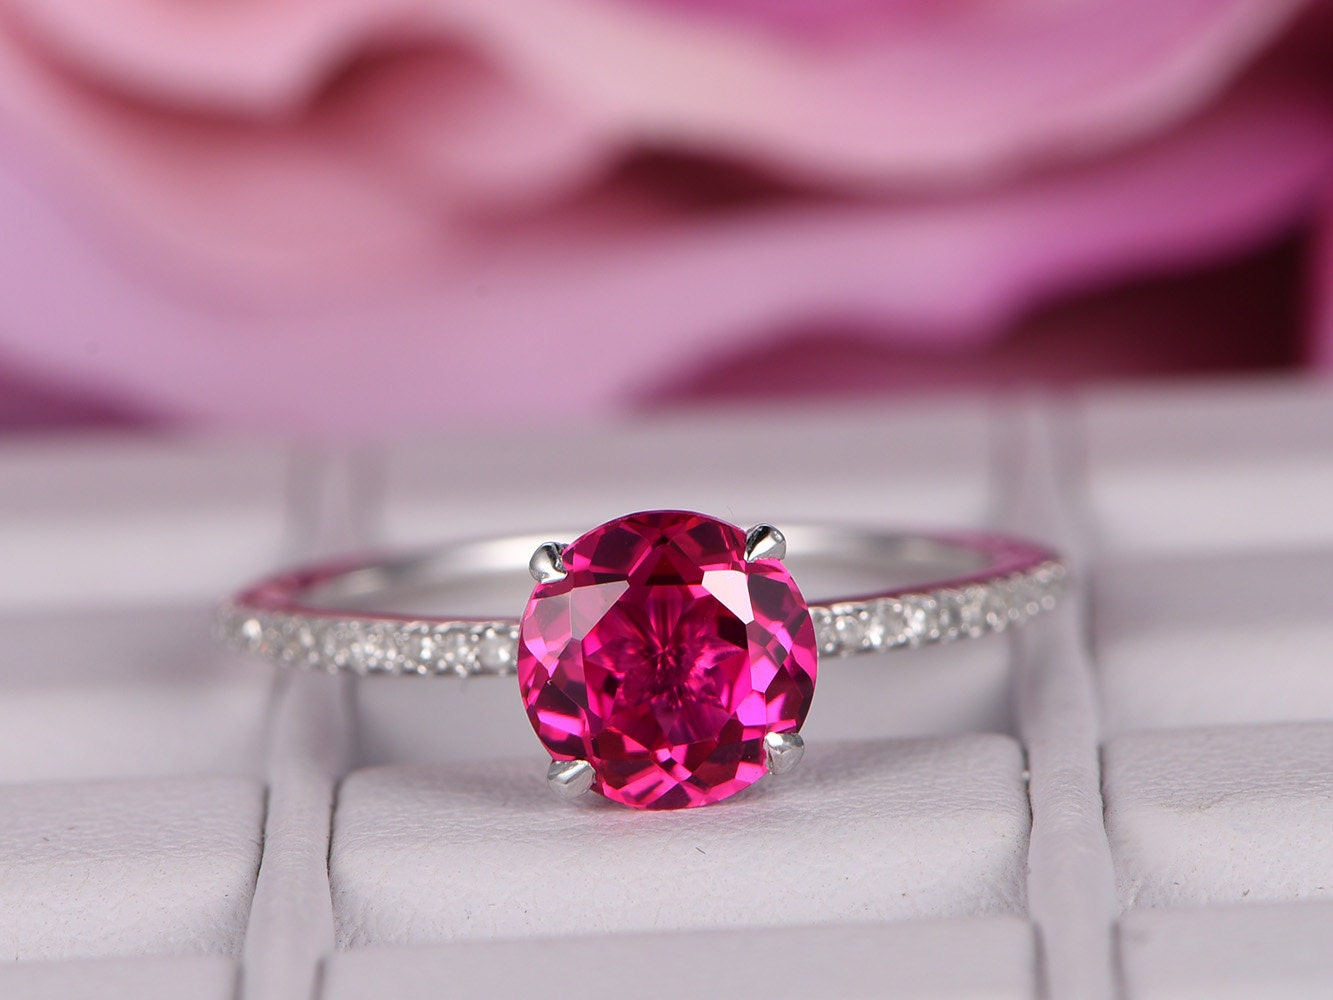 7x7mm Lab-treated Ruby ring with diamond in 14k white